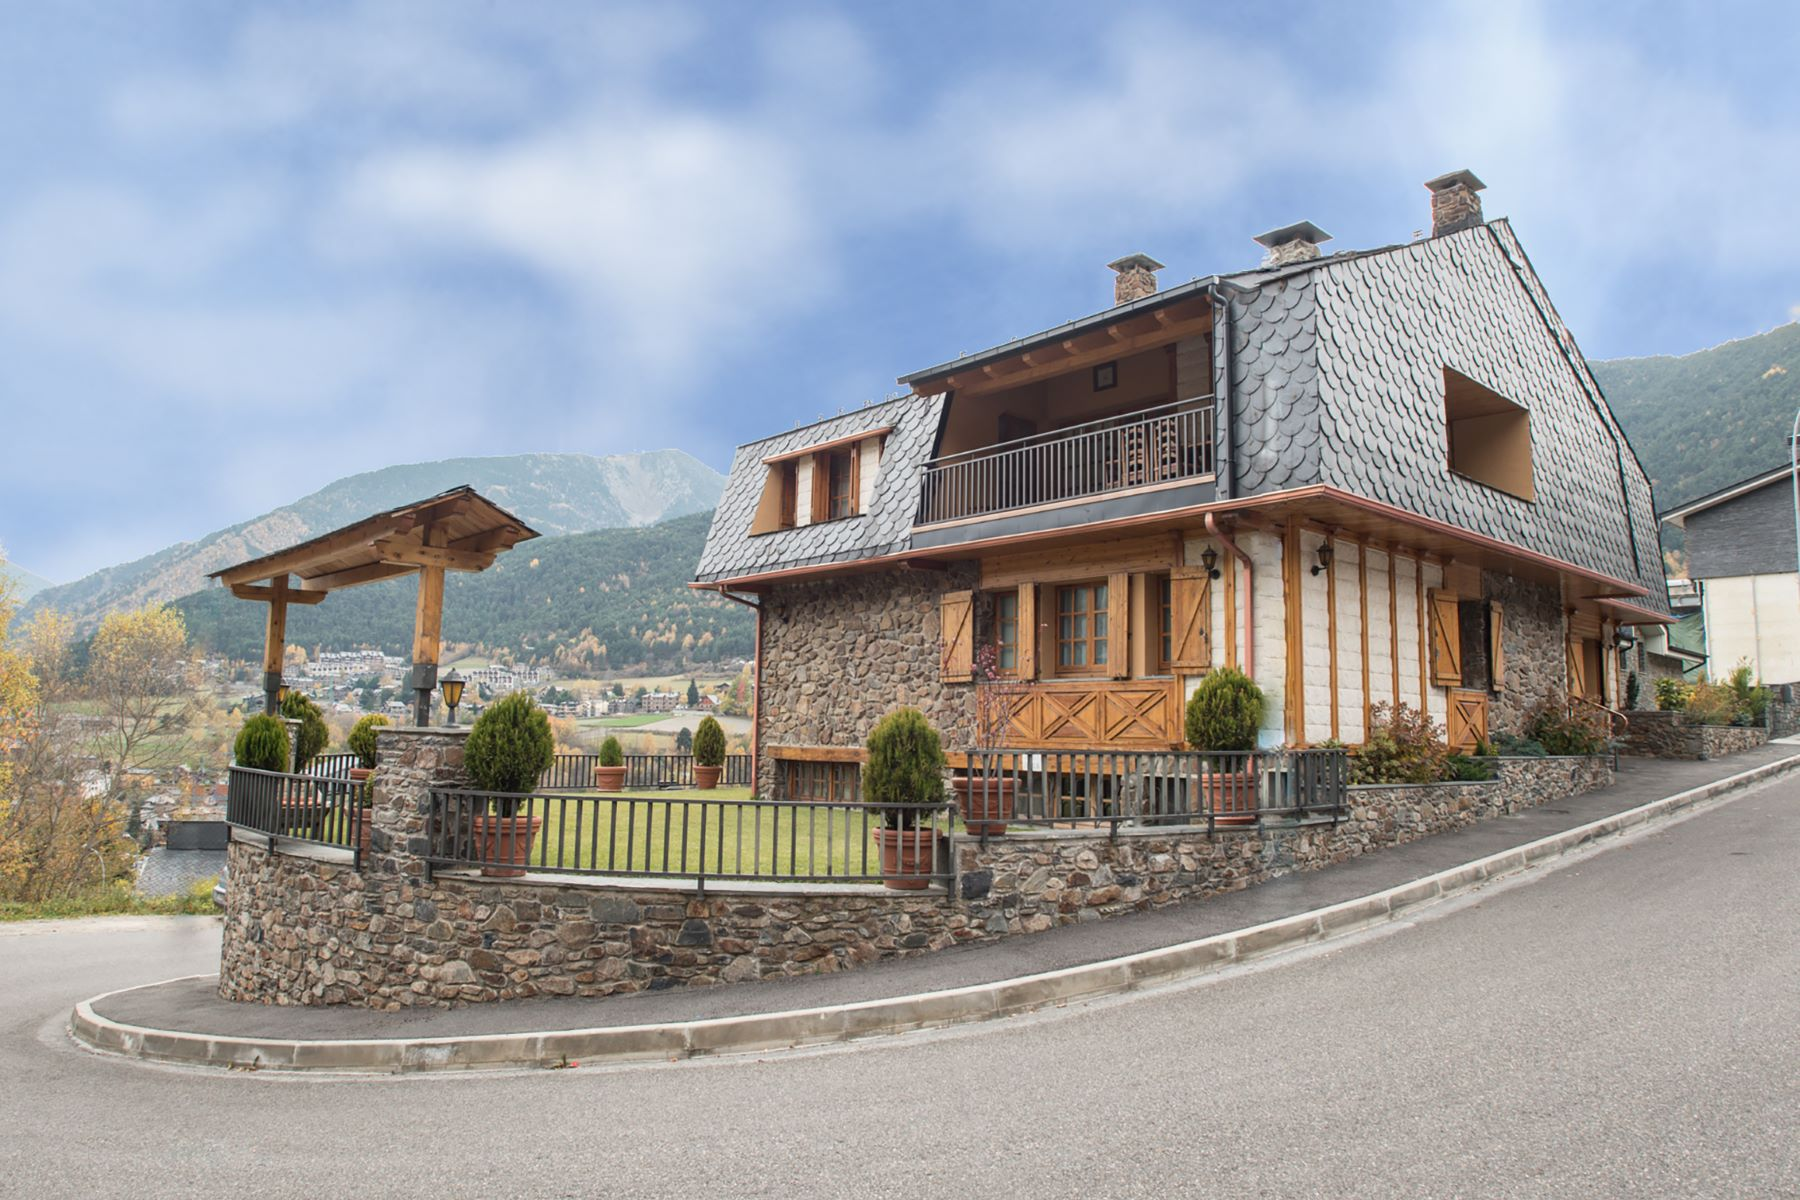 Single Family Homes for Sale at Chalet-Tower for sale in La Massana La Massana, La Massana AD400 Andorra